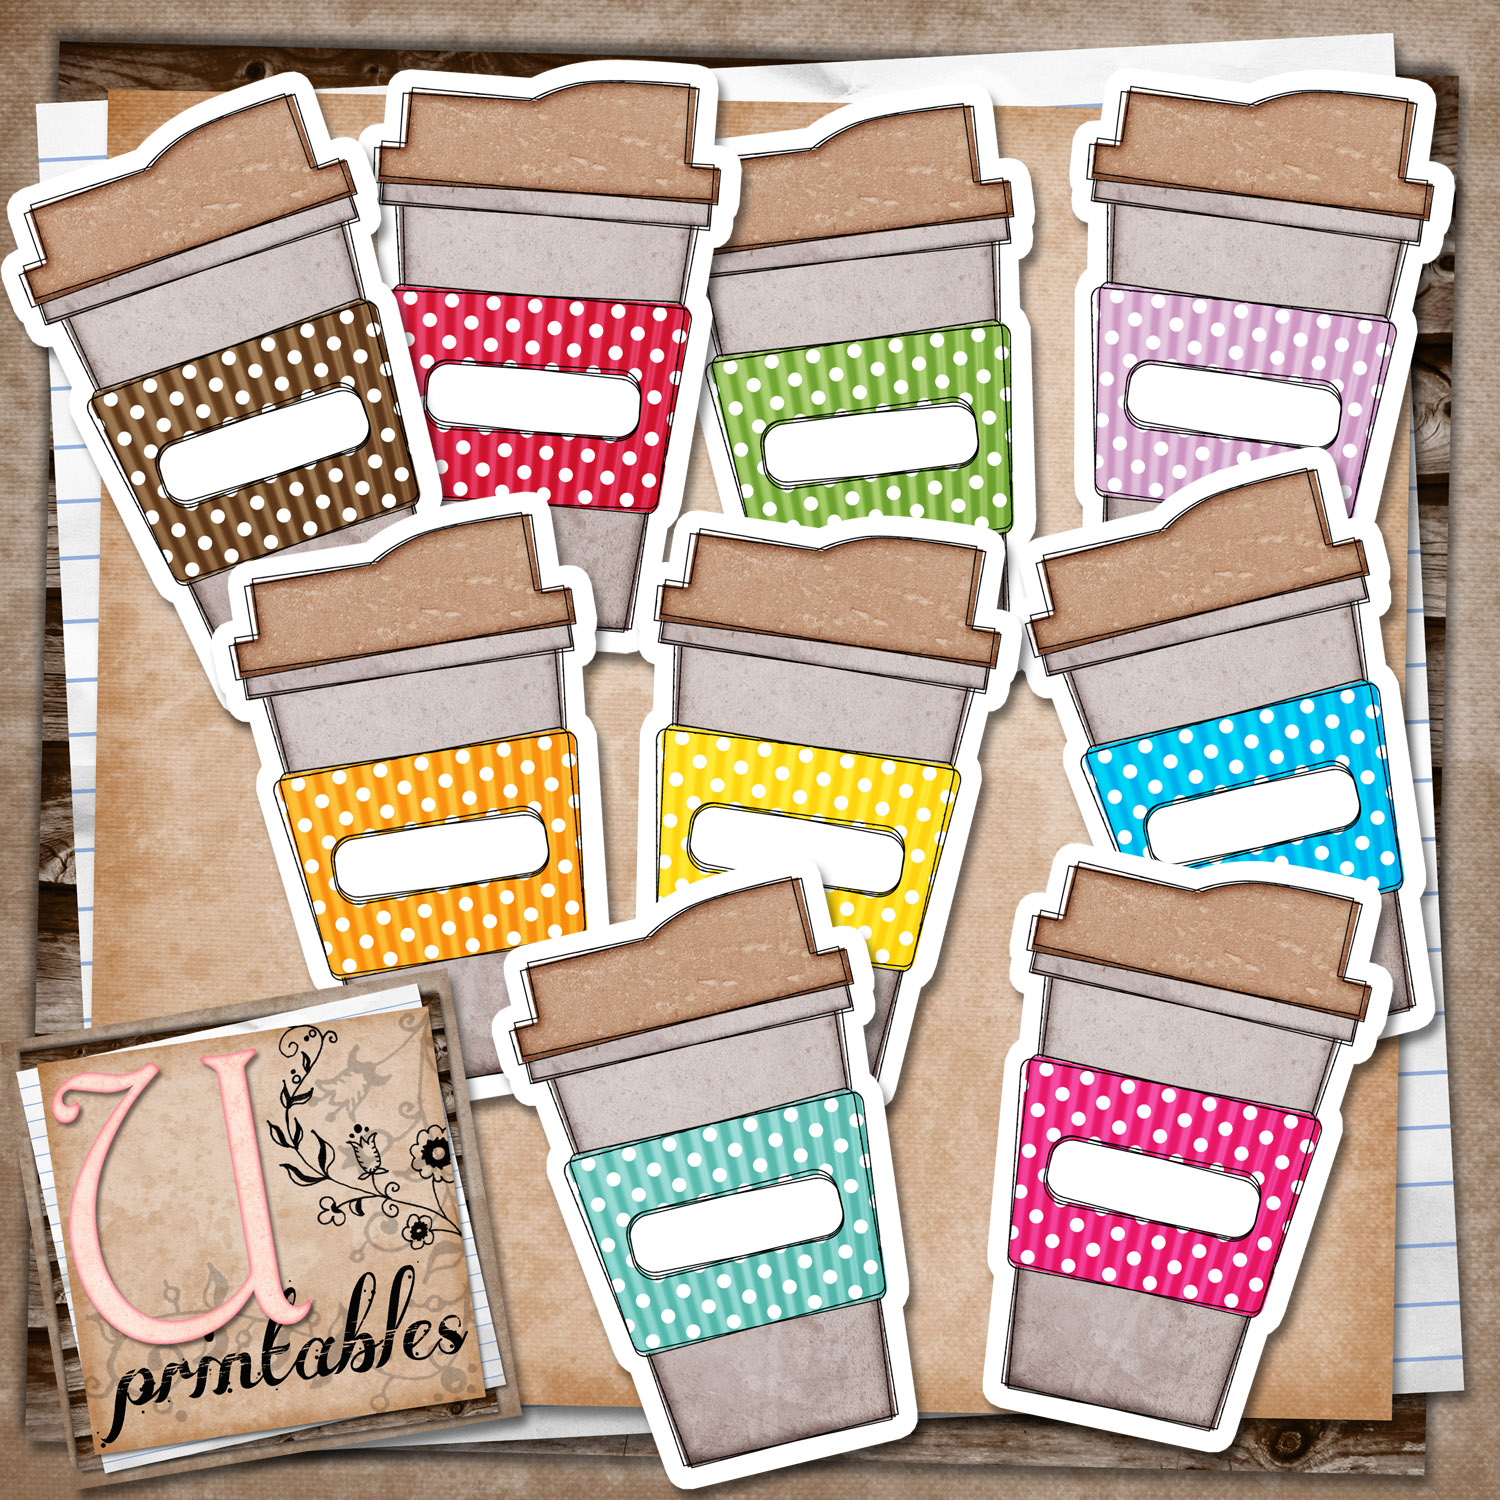 5 Images of Pocket Smash Book Printables